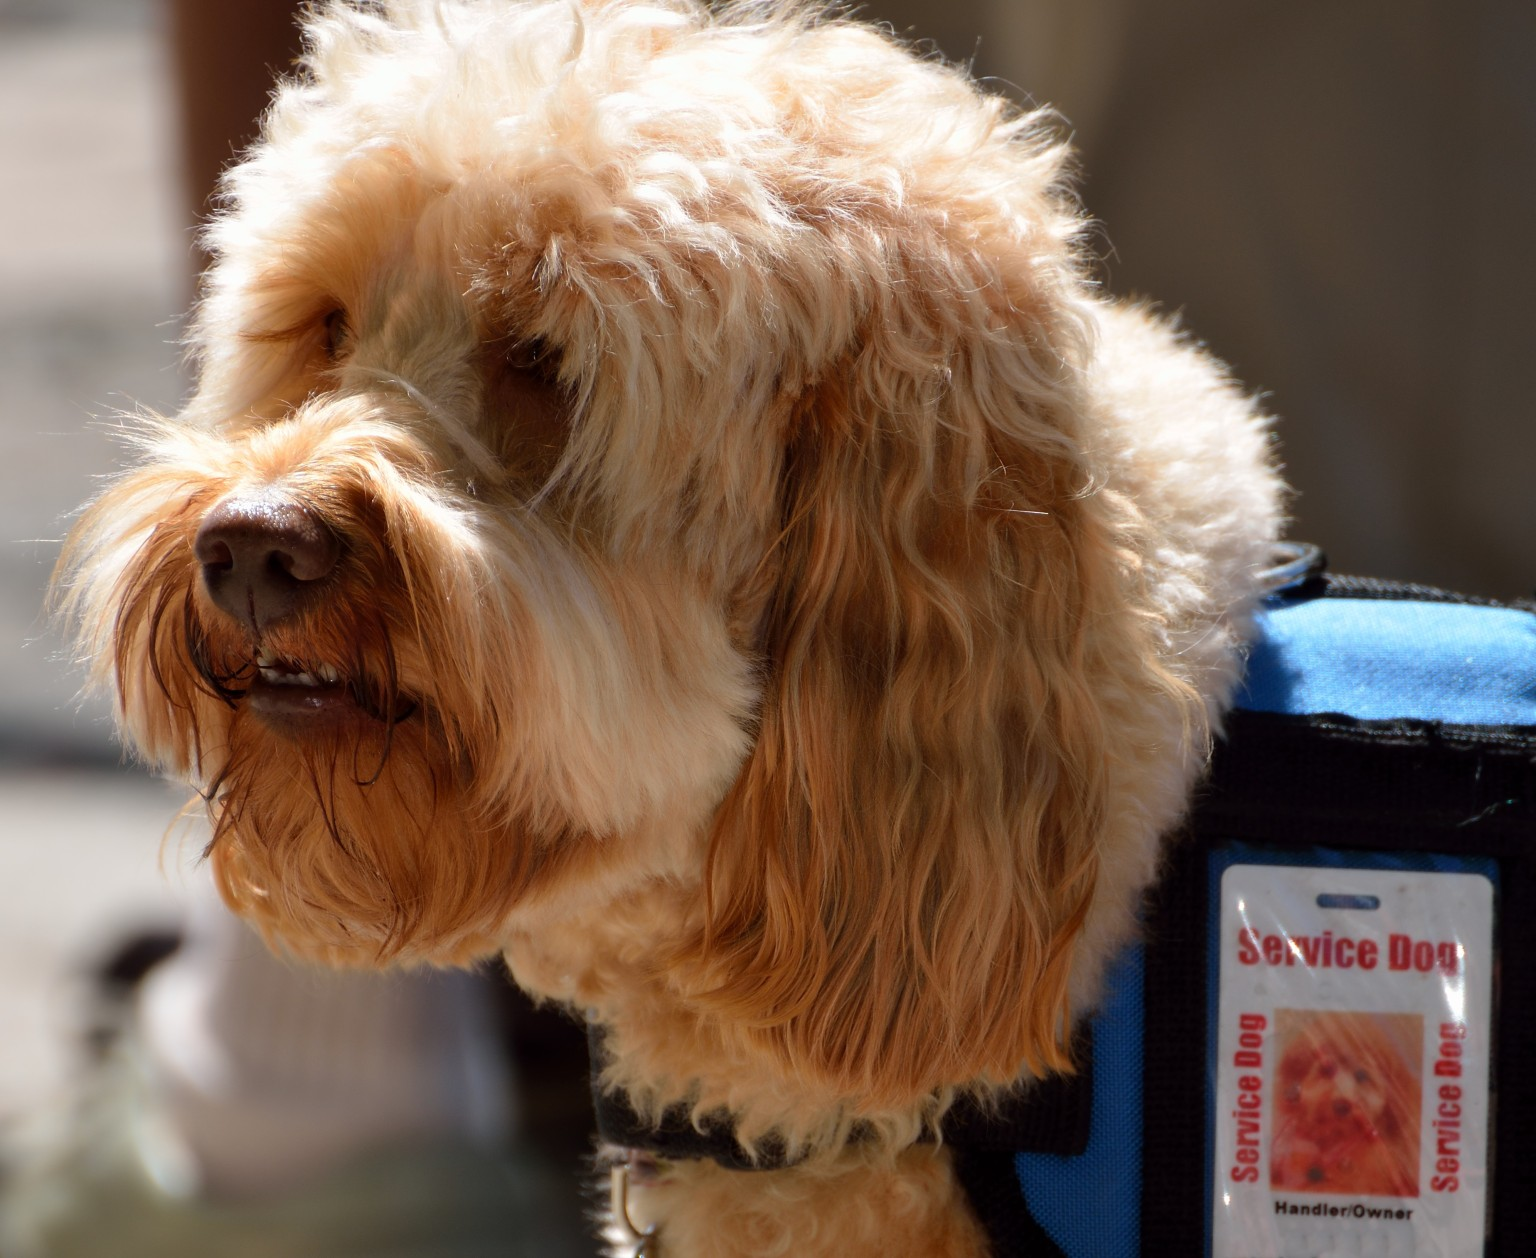 Fake Service Dog Certificates Being Used So Owners Can Take Pets To